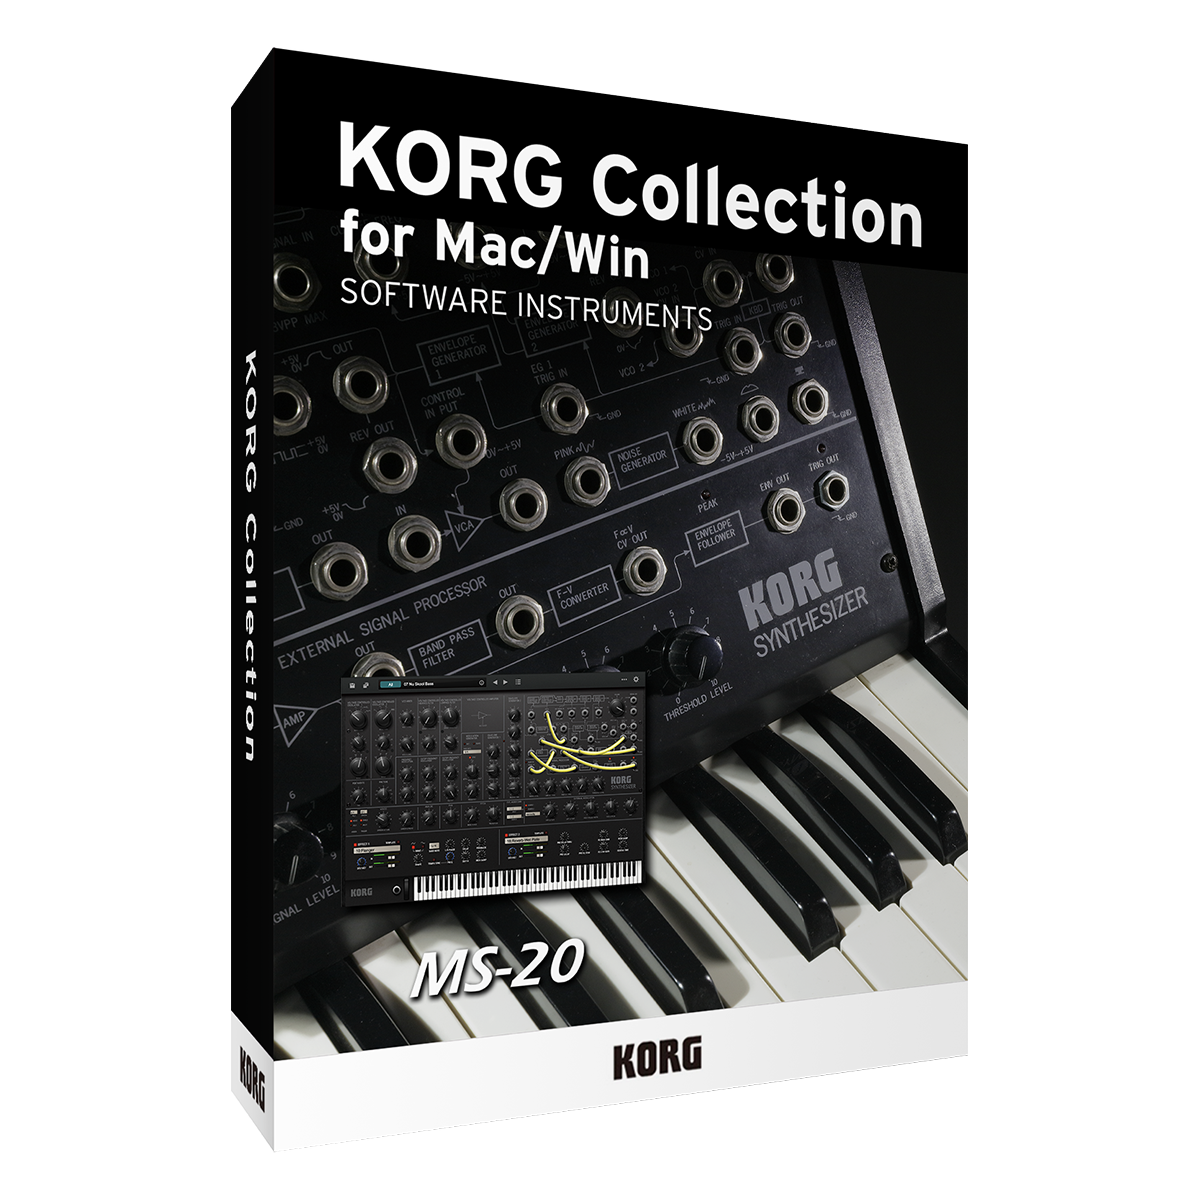 KORG Collection 3 - MS-20